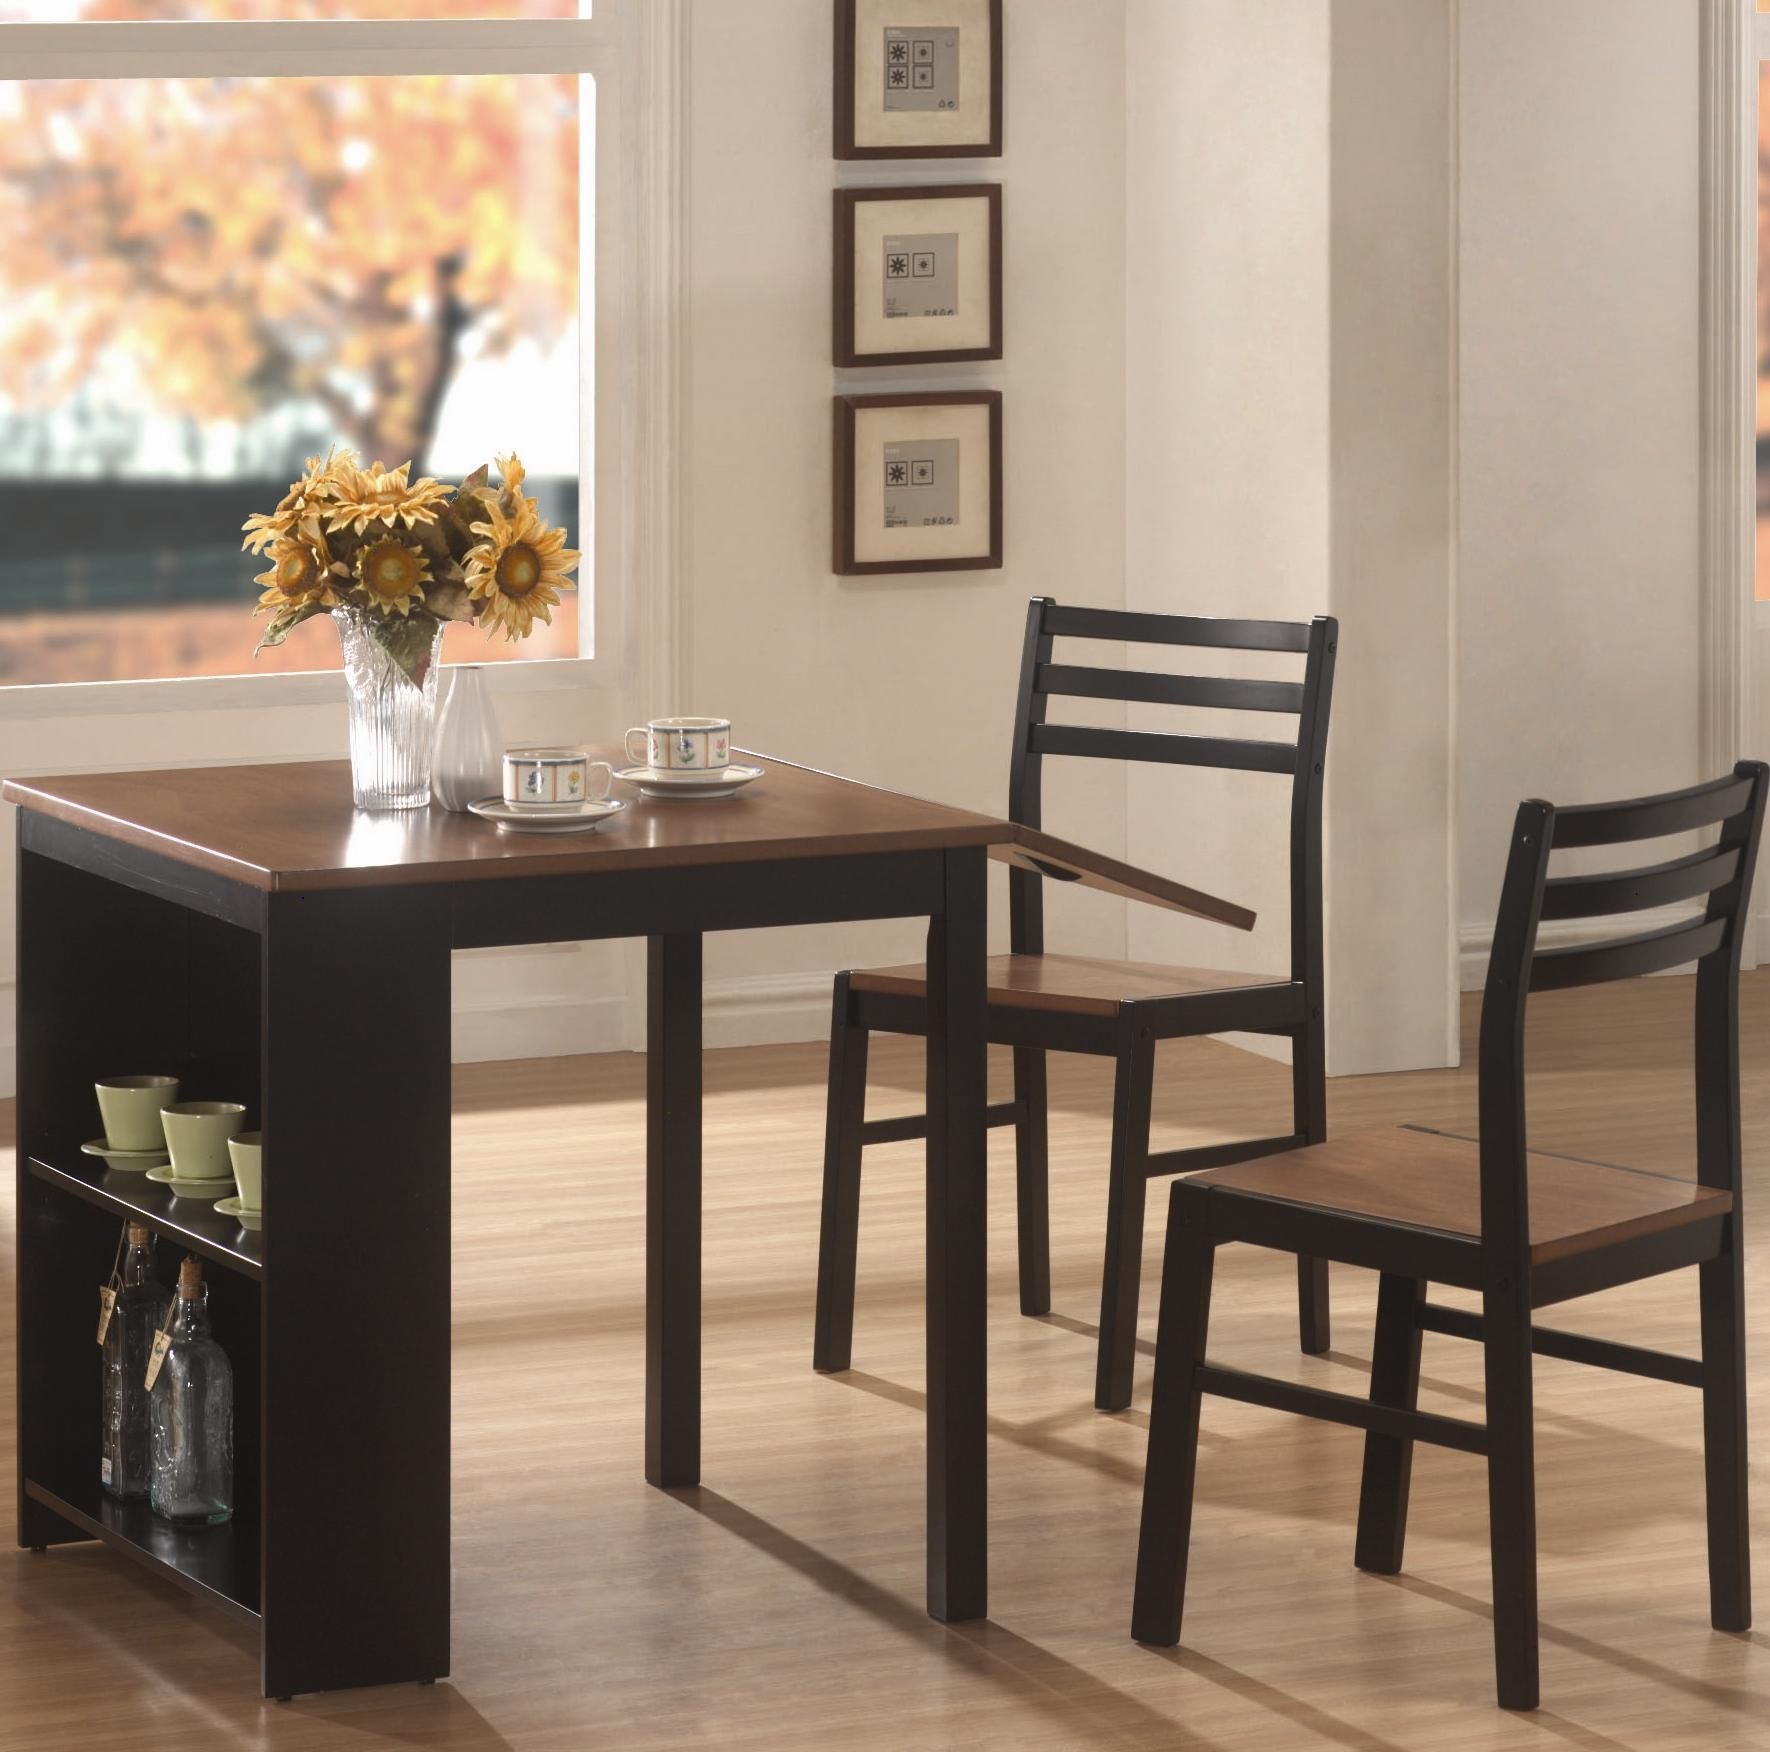 Breakfast Nook Table | Small Dining Table And Chairs · 3 Piece ...